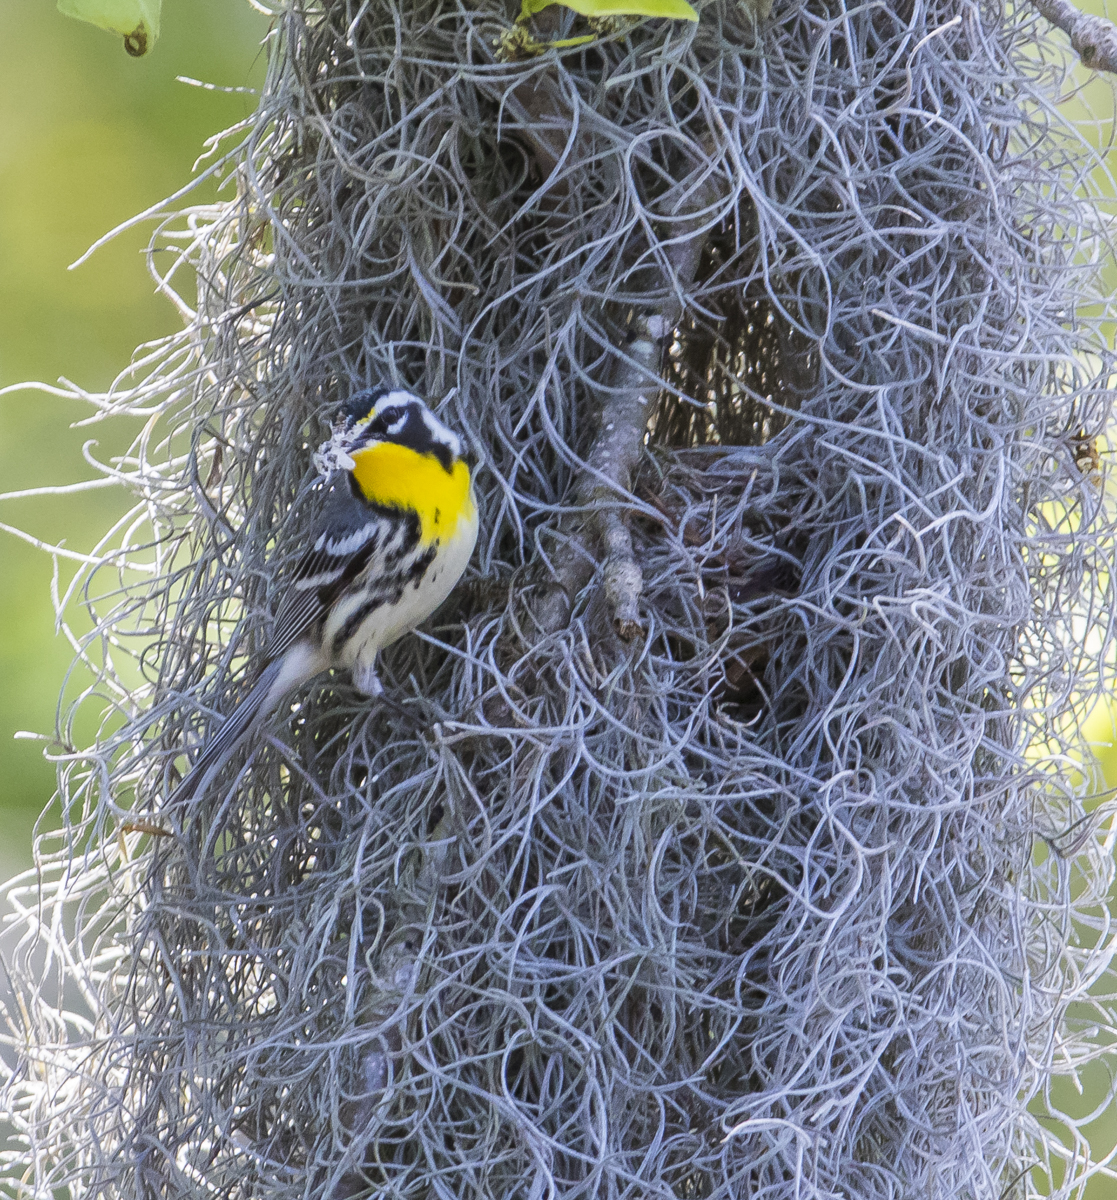 Yellow-throated warbler at nest in Spanish moss closer view